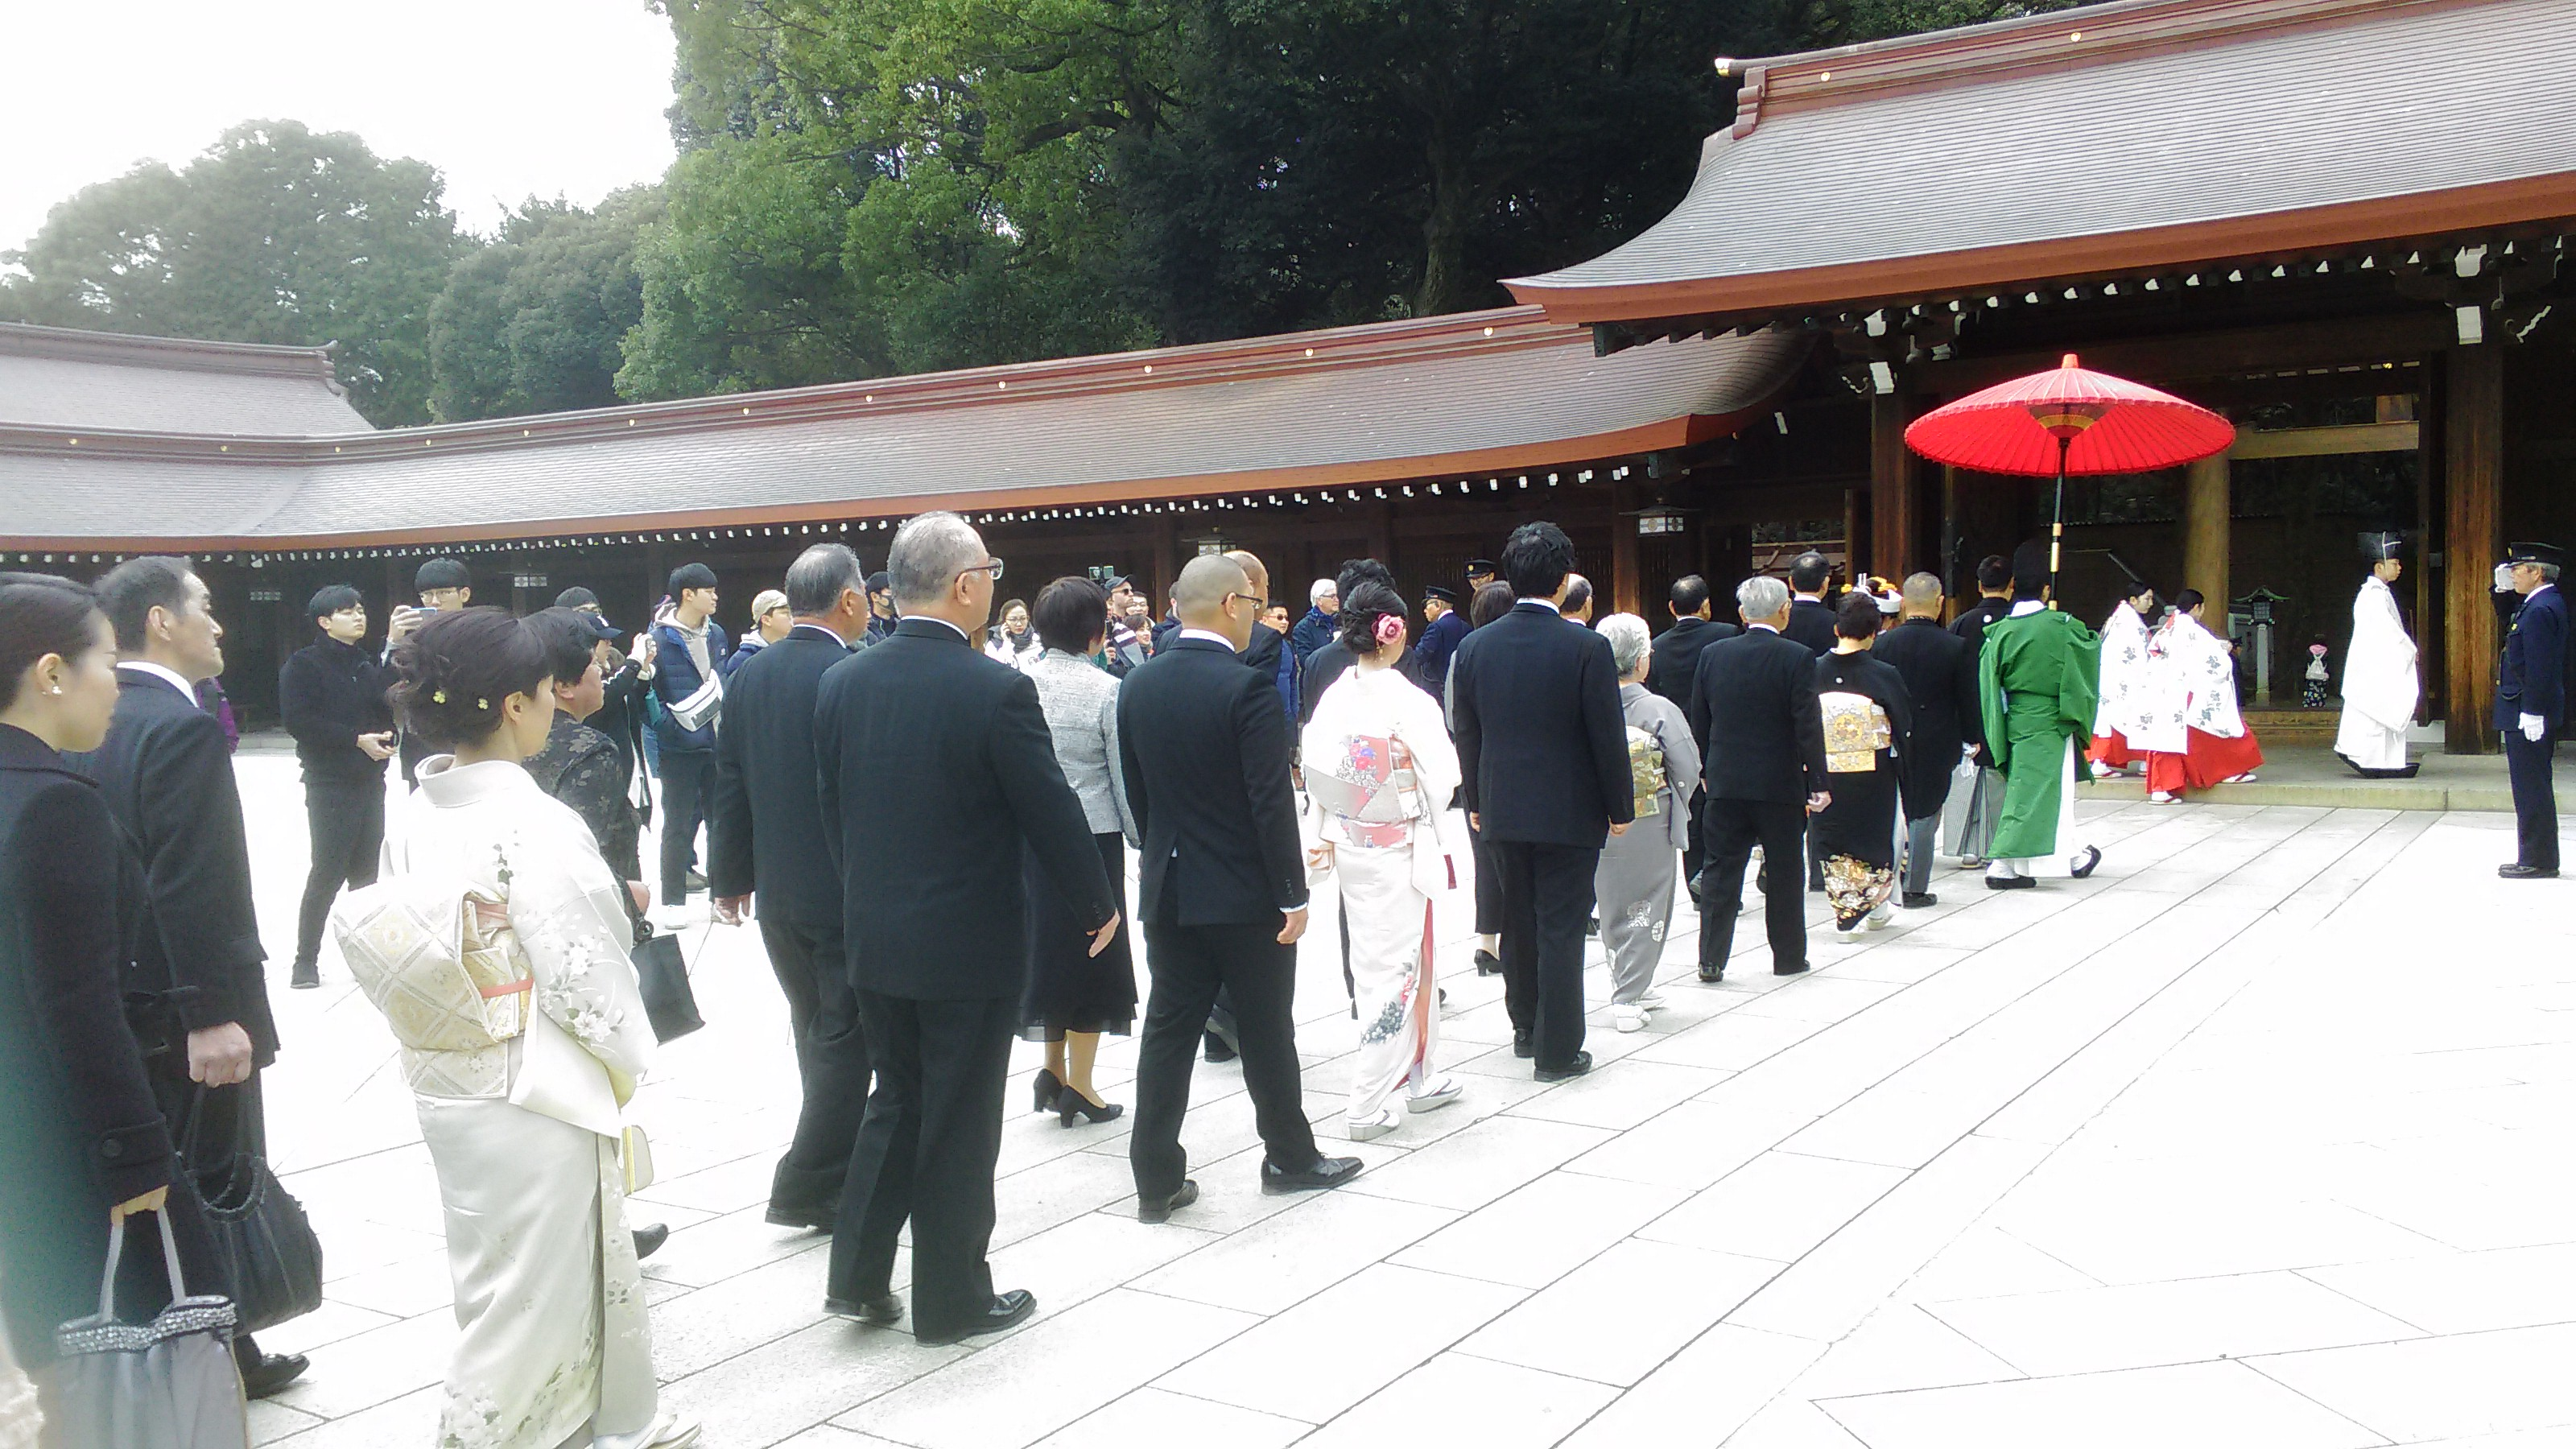 A Japanese wedding in line with the Shinto ritual